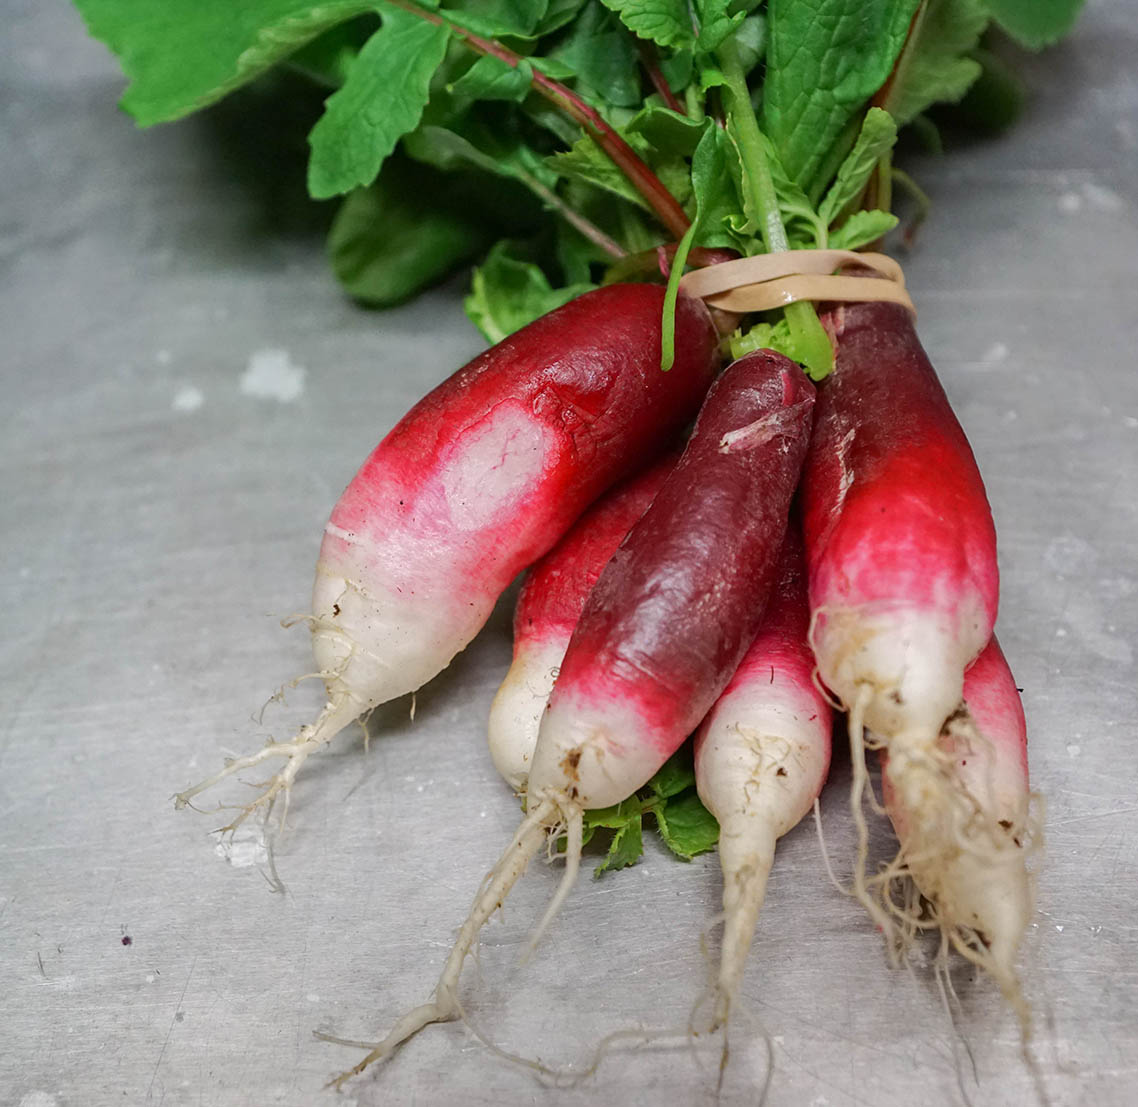 Planting, Growing and Harvesting Radishes in Stony Brook's